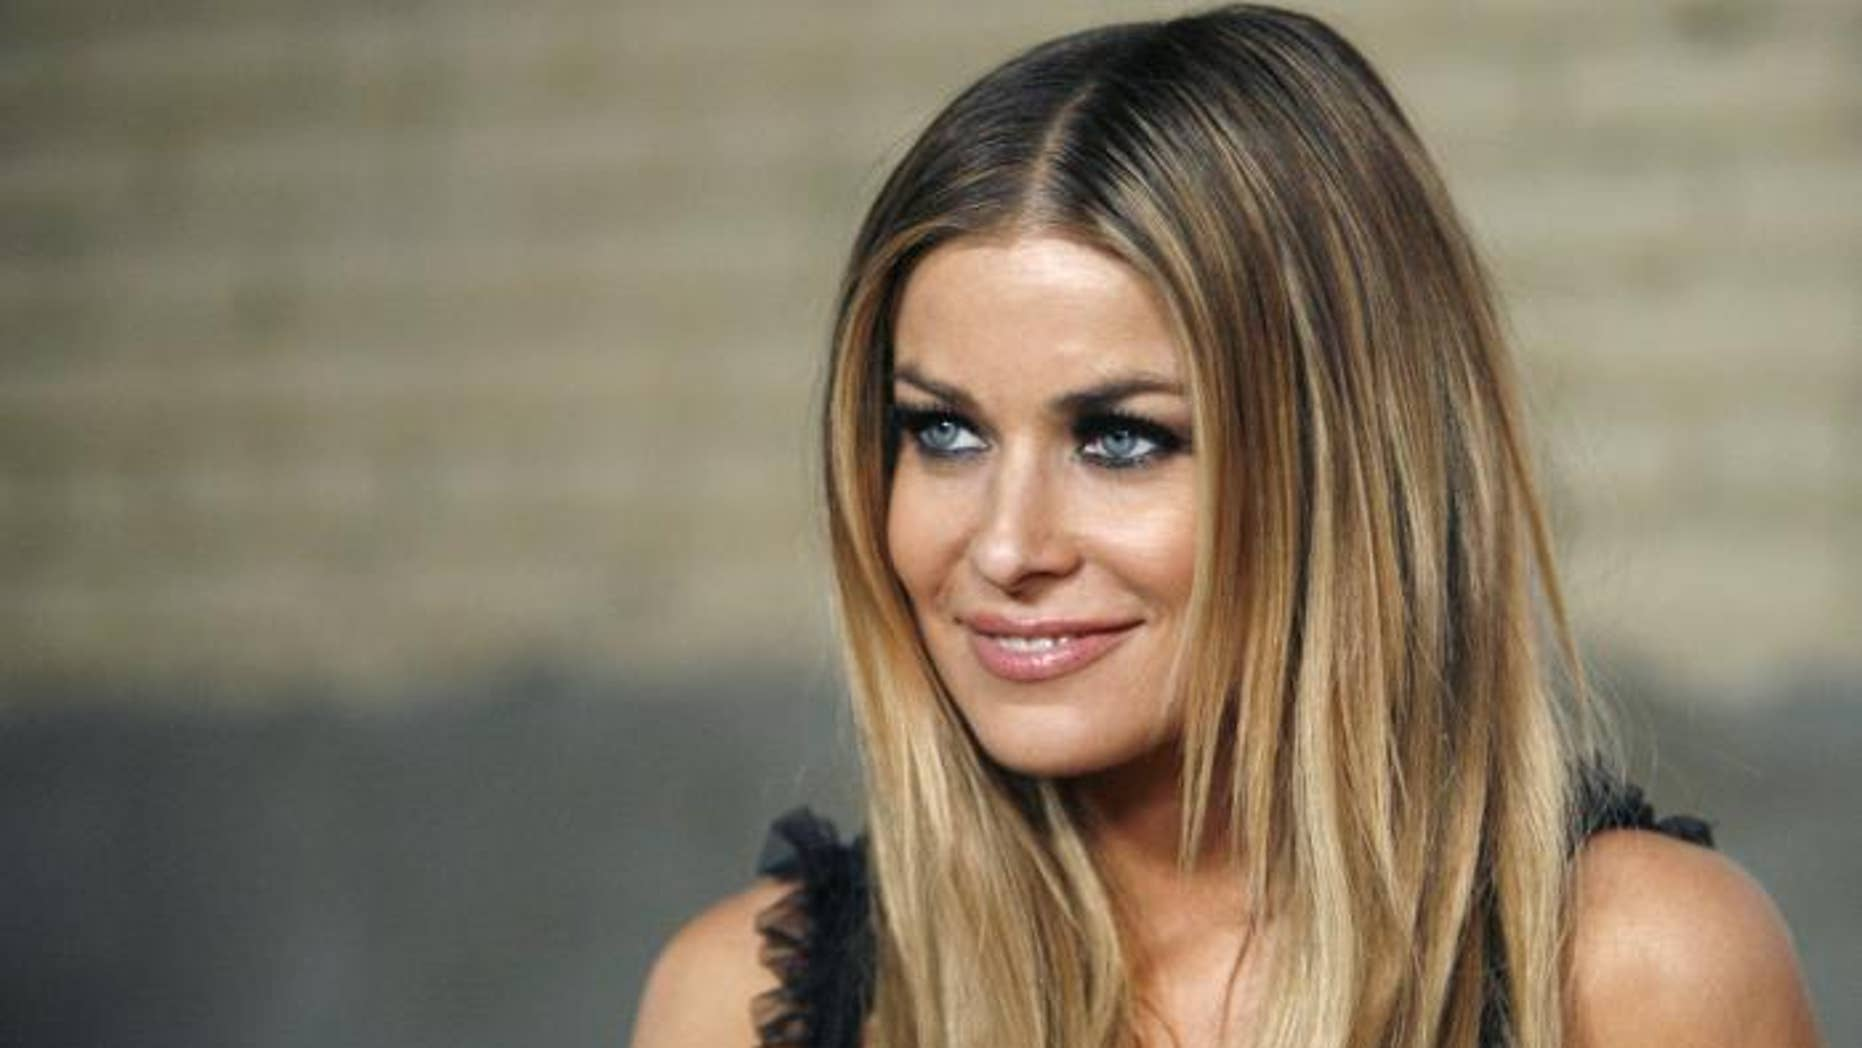 Model Carmen Electra told reporters her biggest turnoff is when men lie to her.